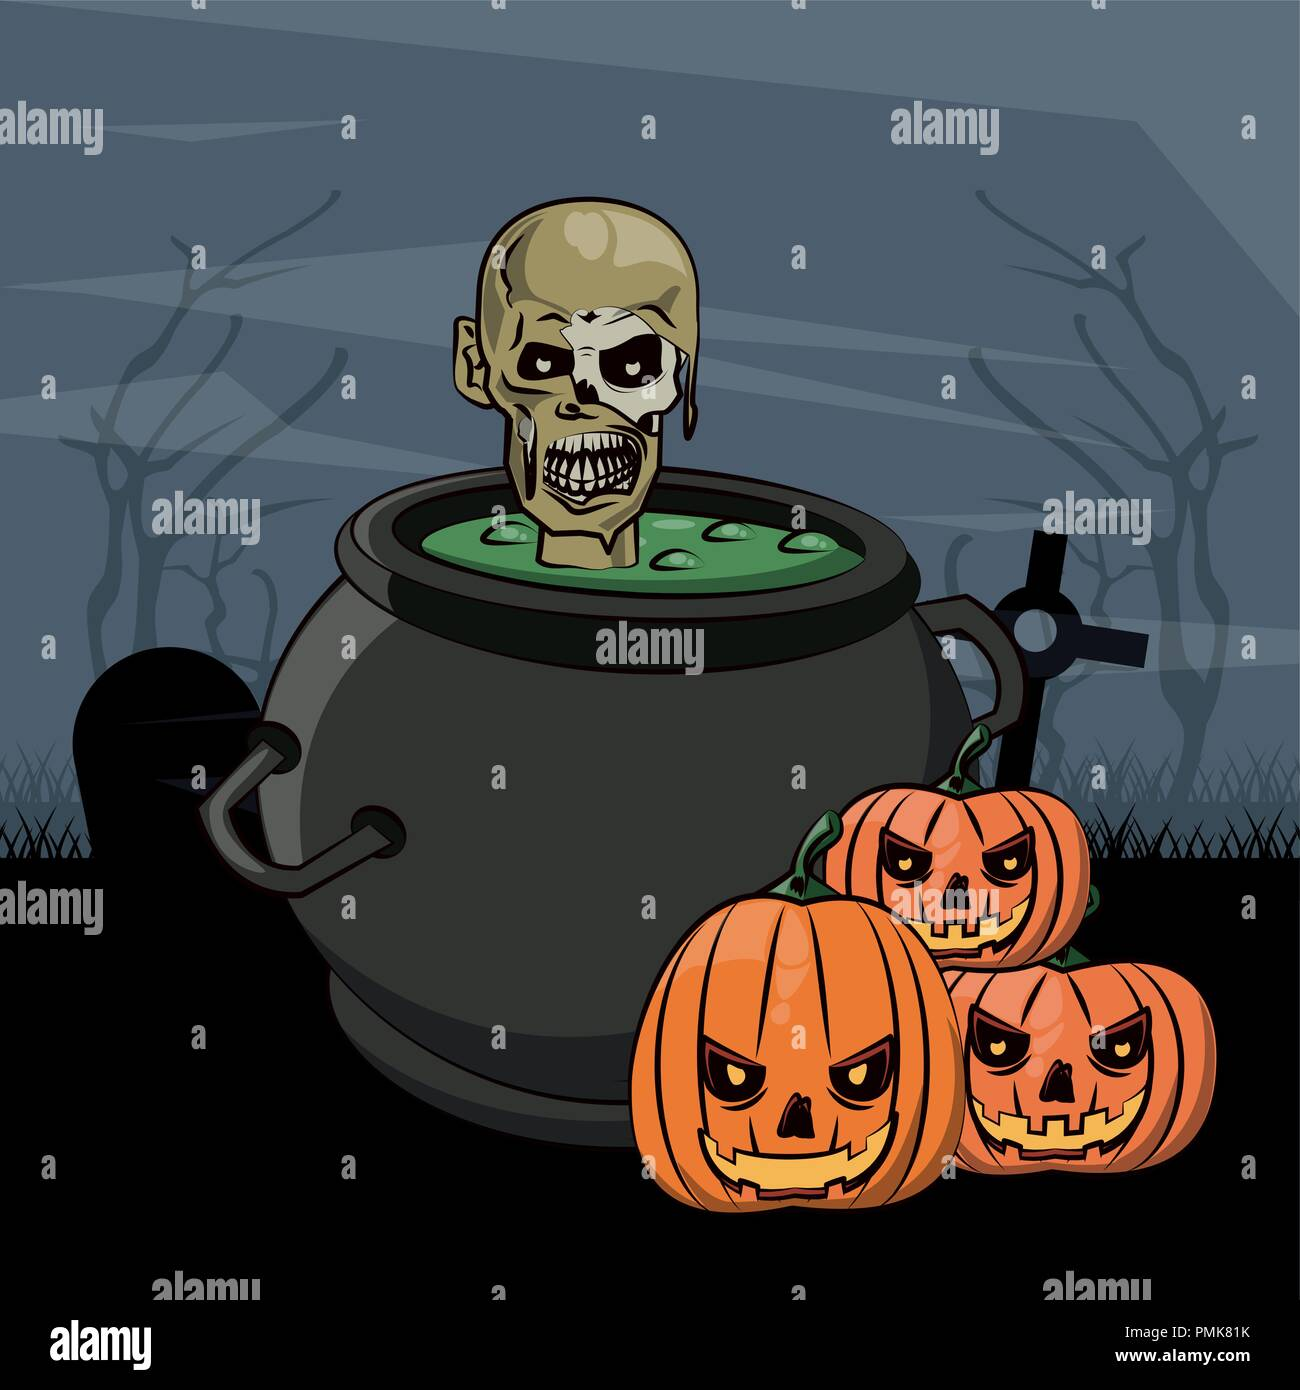 Halloween scary cartoons - Stock Vector